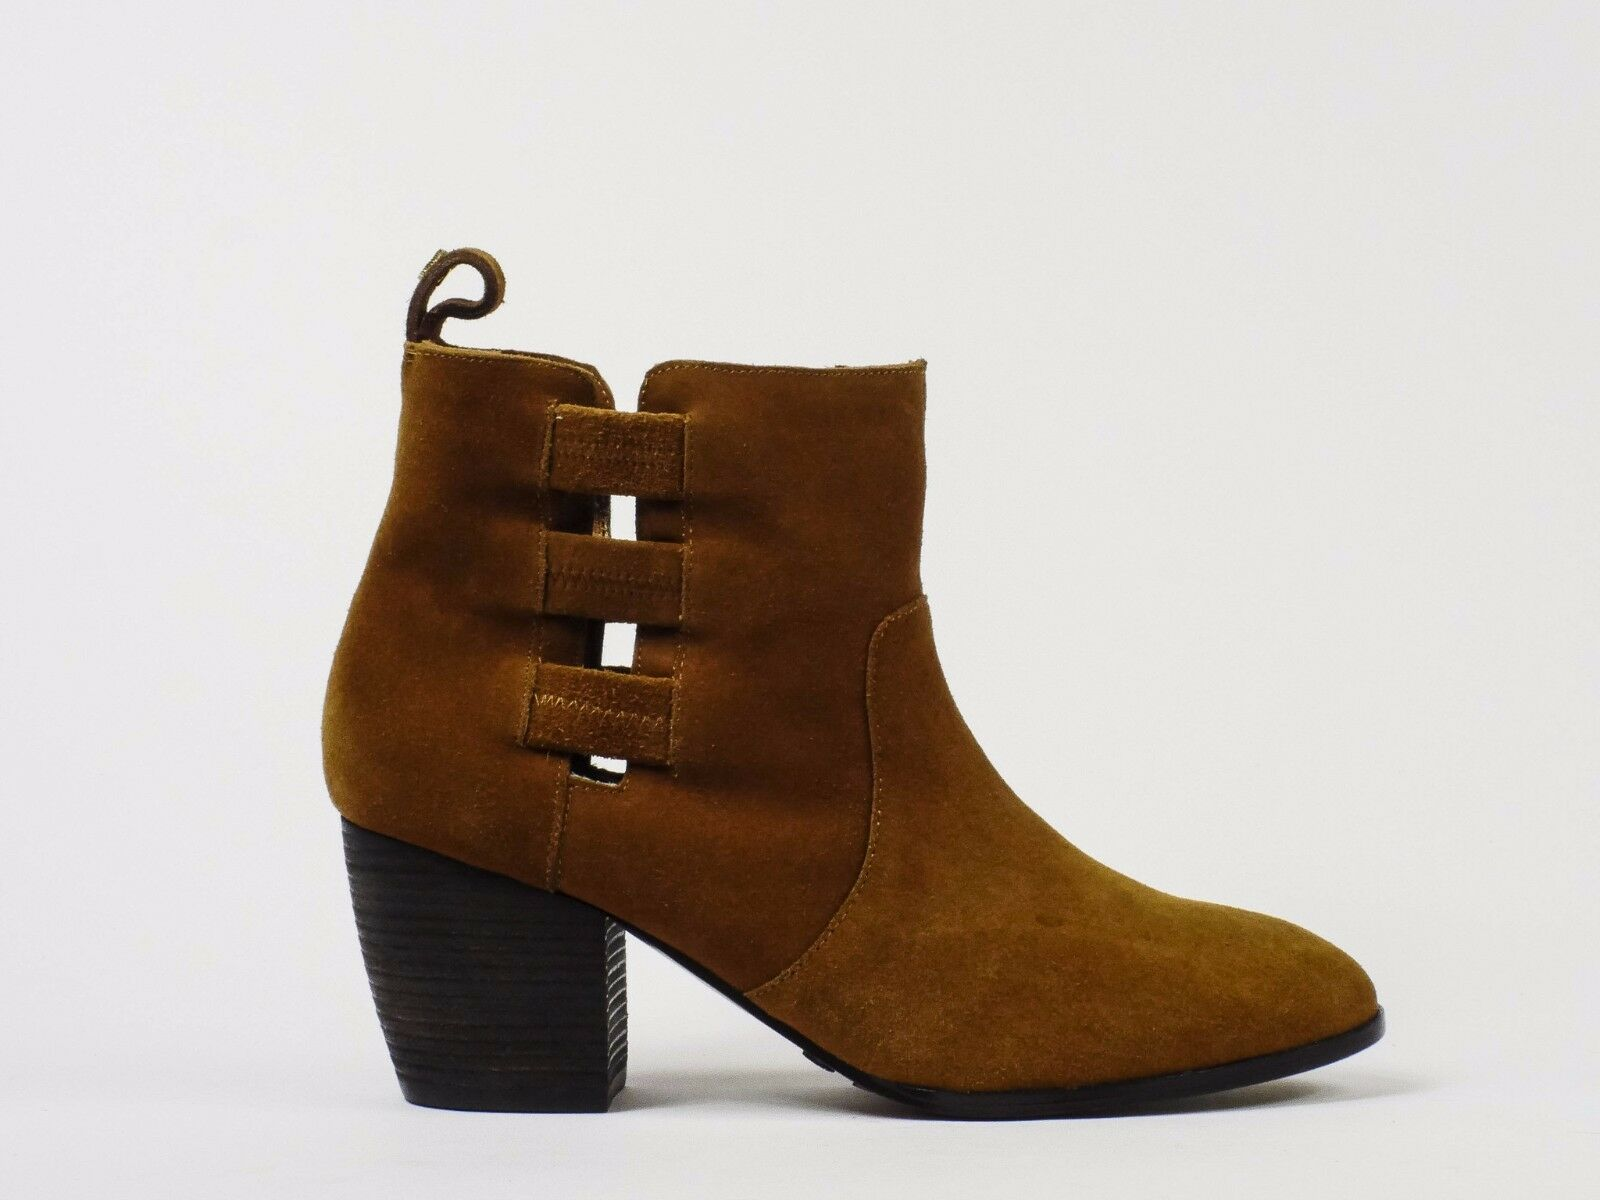 Cynthia Vincent Suede Cutout Booties Leather Rust Brown Size 10  325